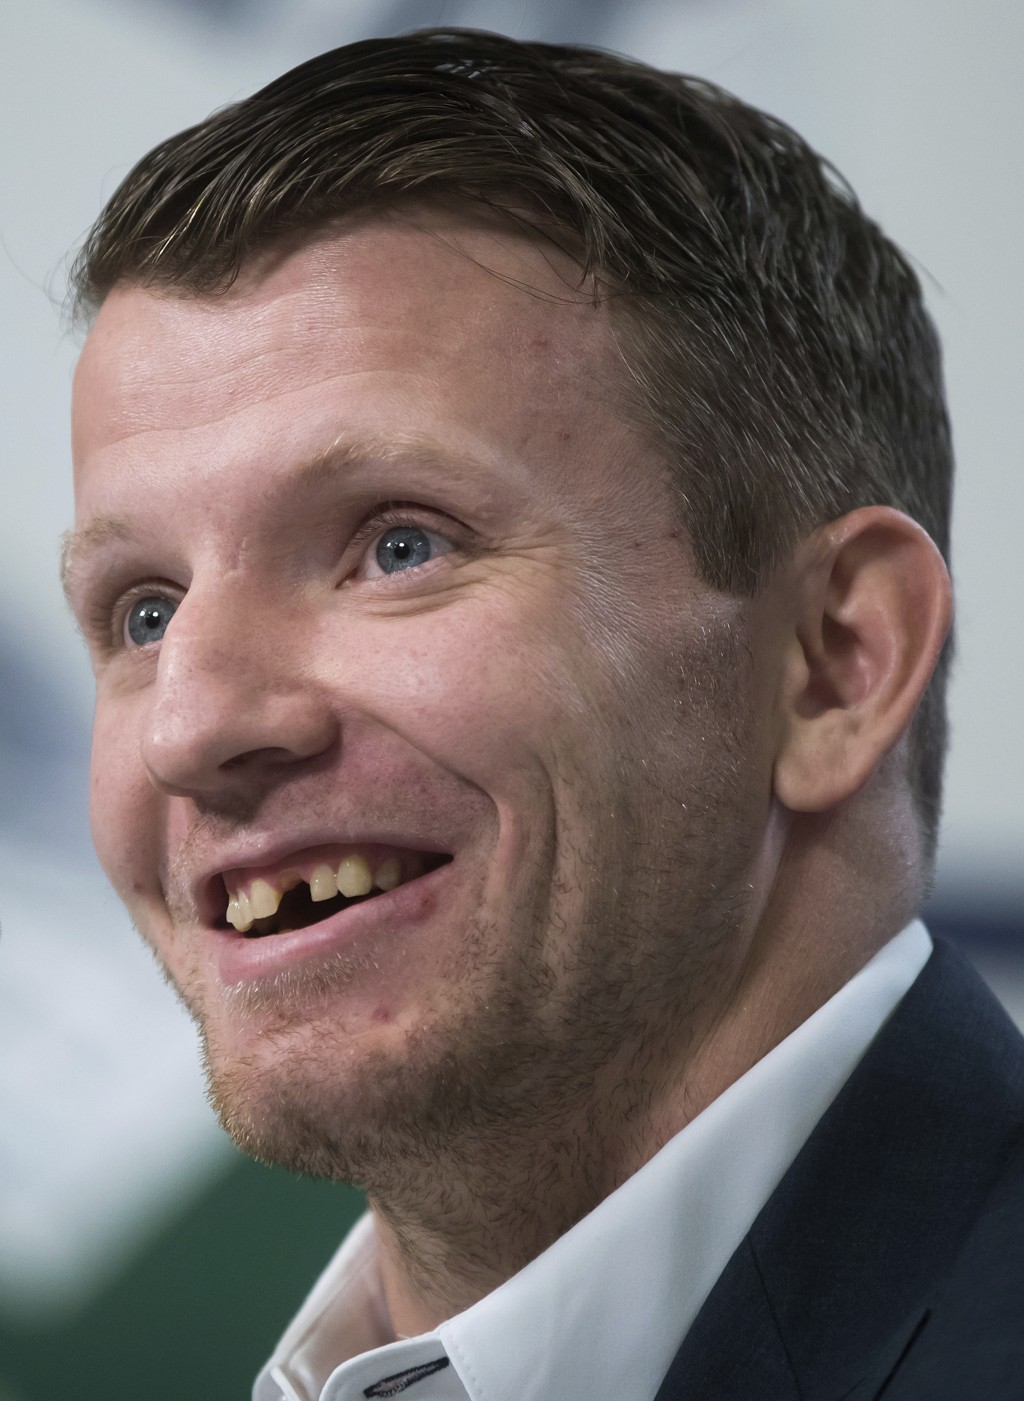 Derek Dorsett, who had to retire from playing professional hockey with the Vancouver Canucks recently due to medical reasons, smiles while speaking du